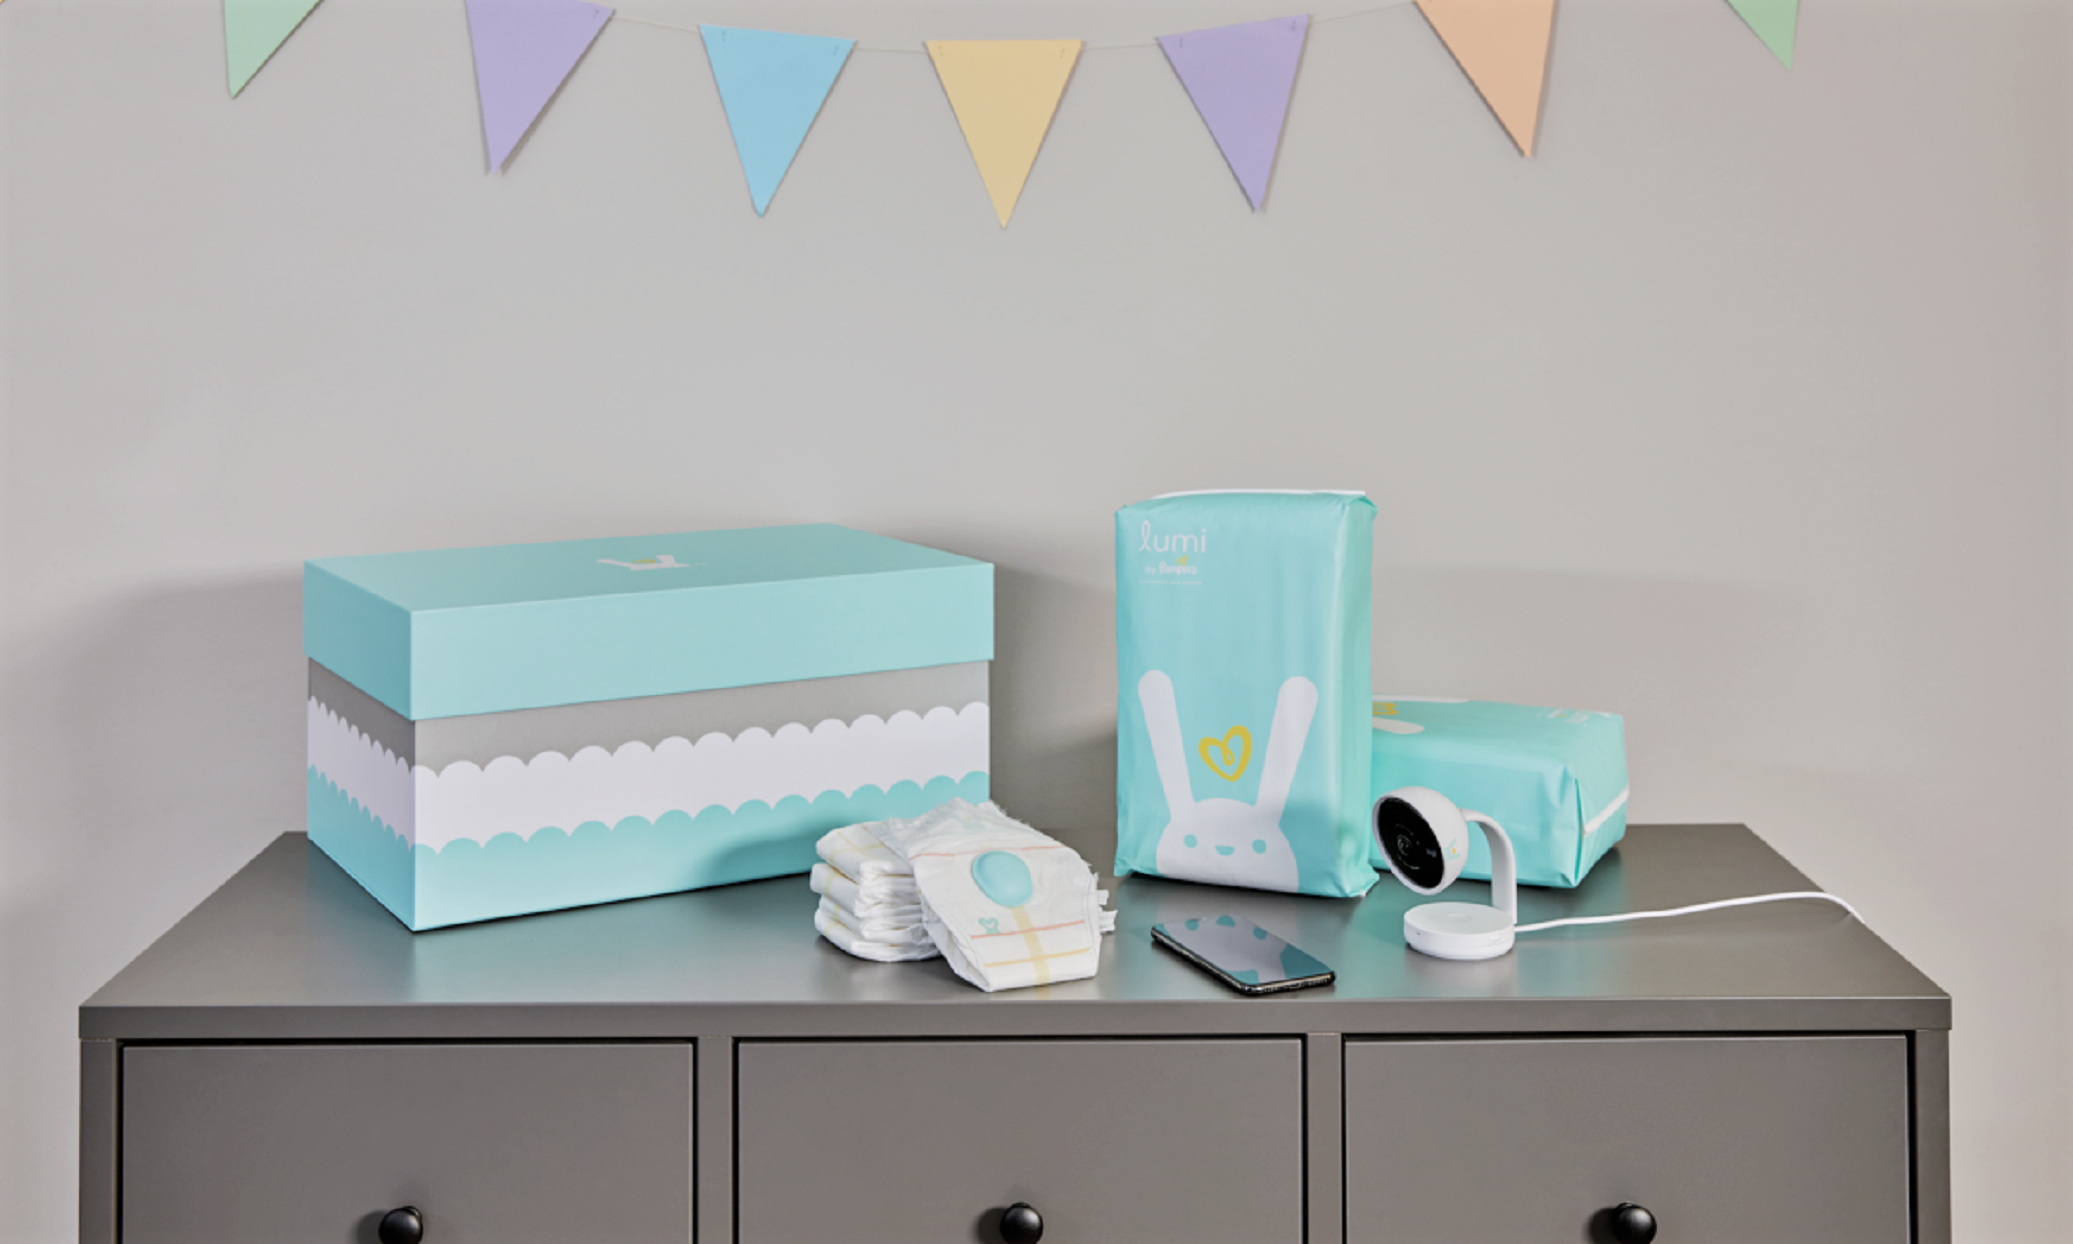 Pampers Lumi All In One Care System